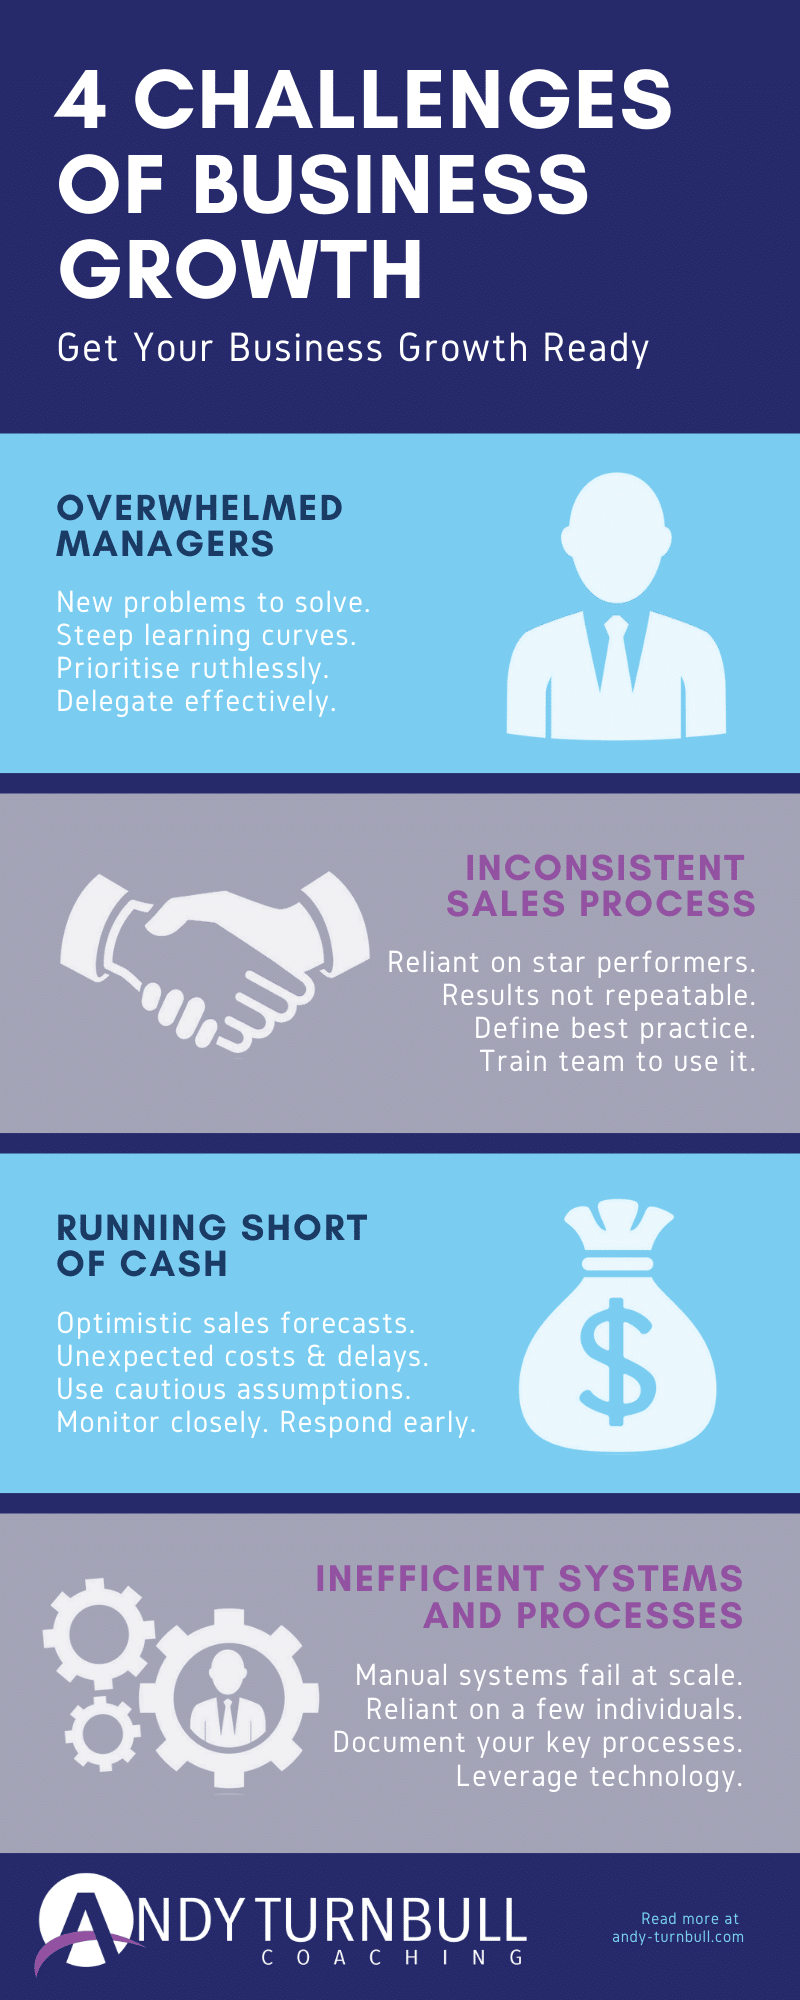 4 Problems and Challenges of Business Growth Infographic Get Your Business Ready for Growth